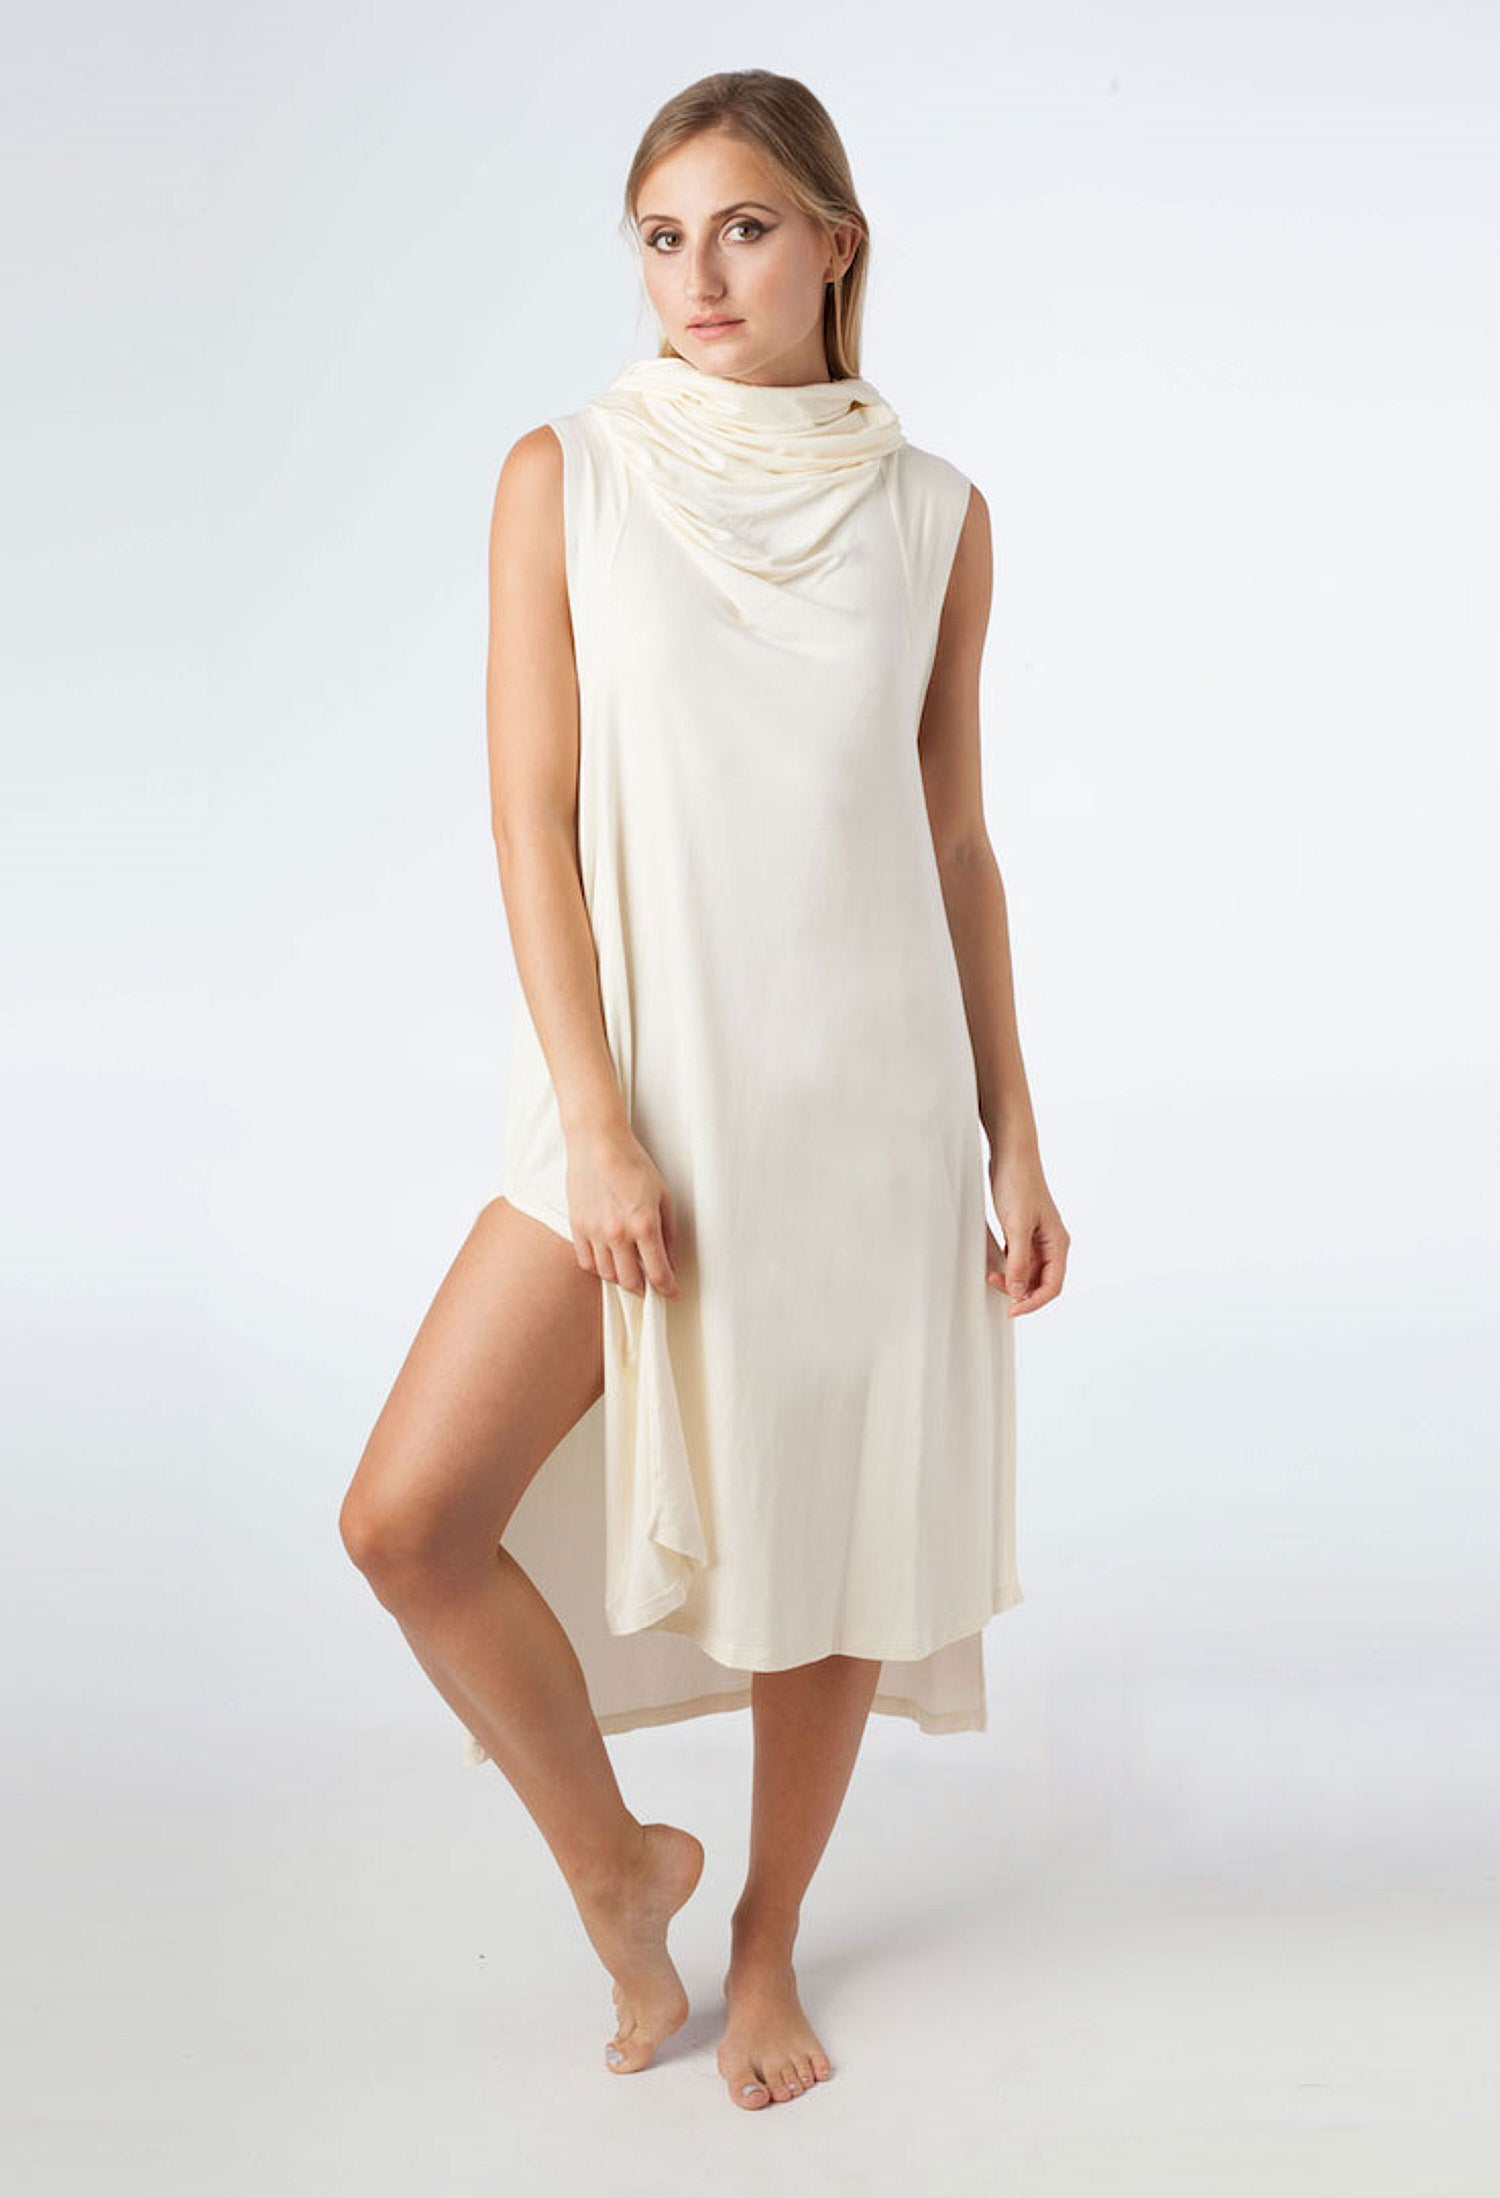 Echape Long Top/Dress - Ivory